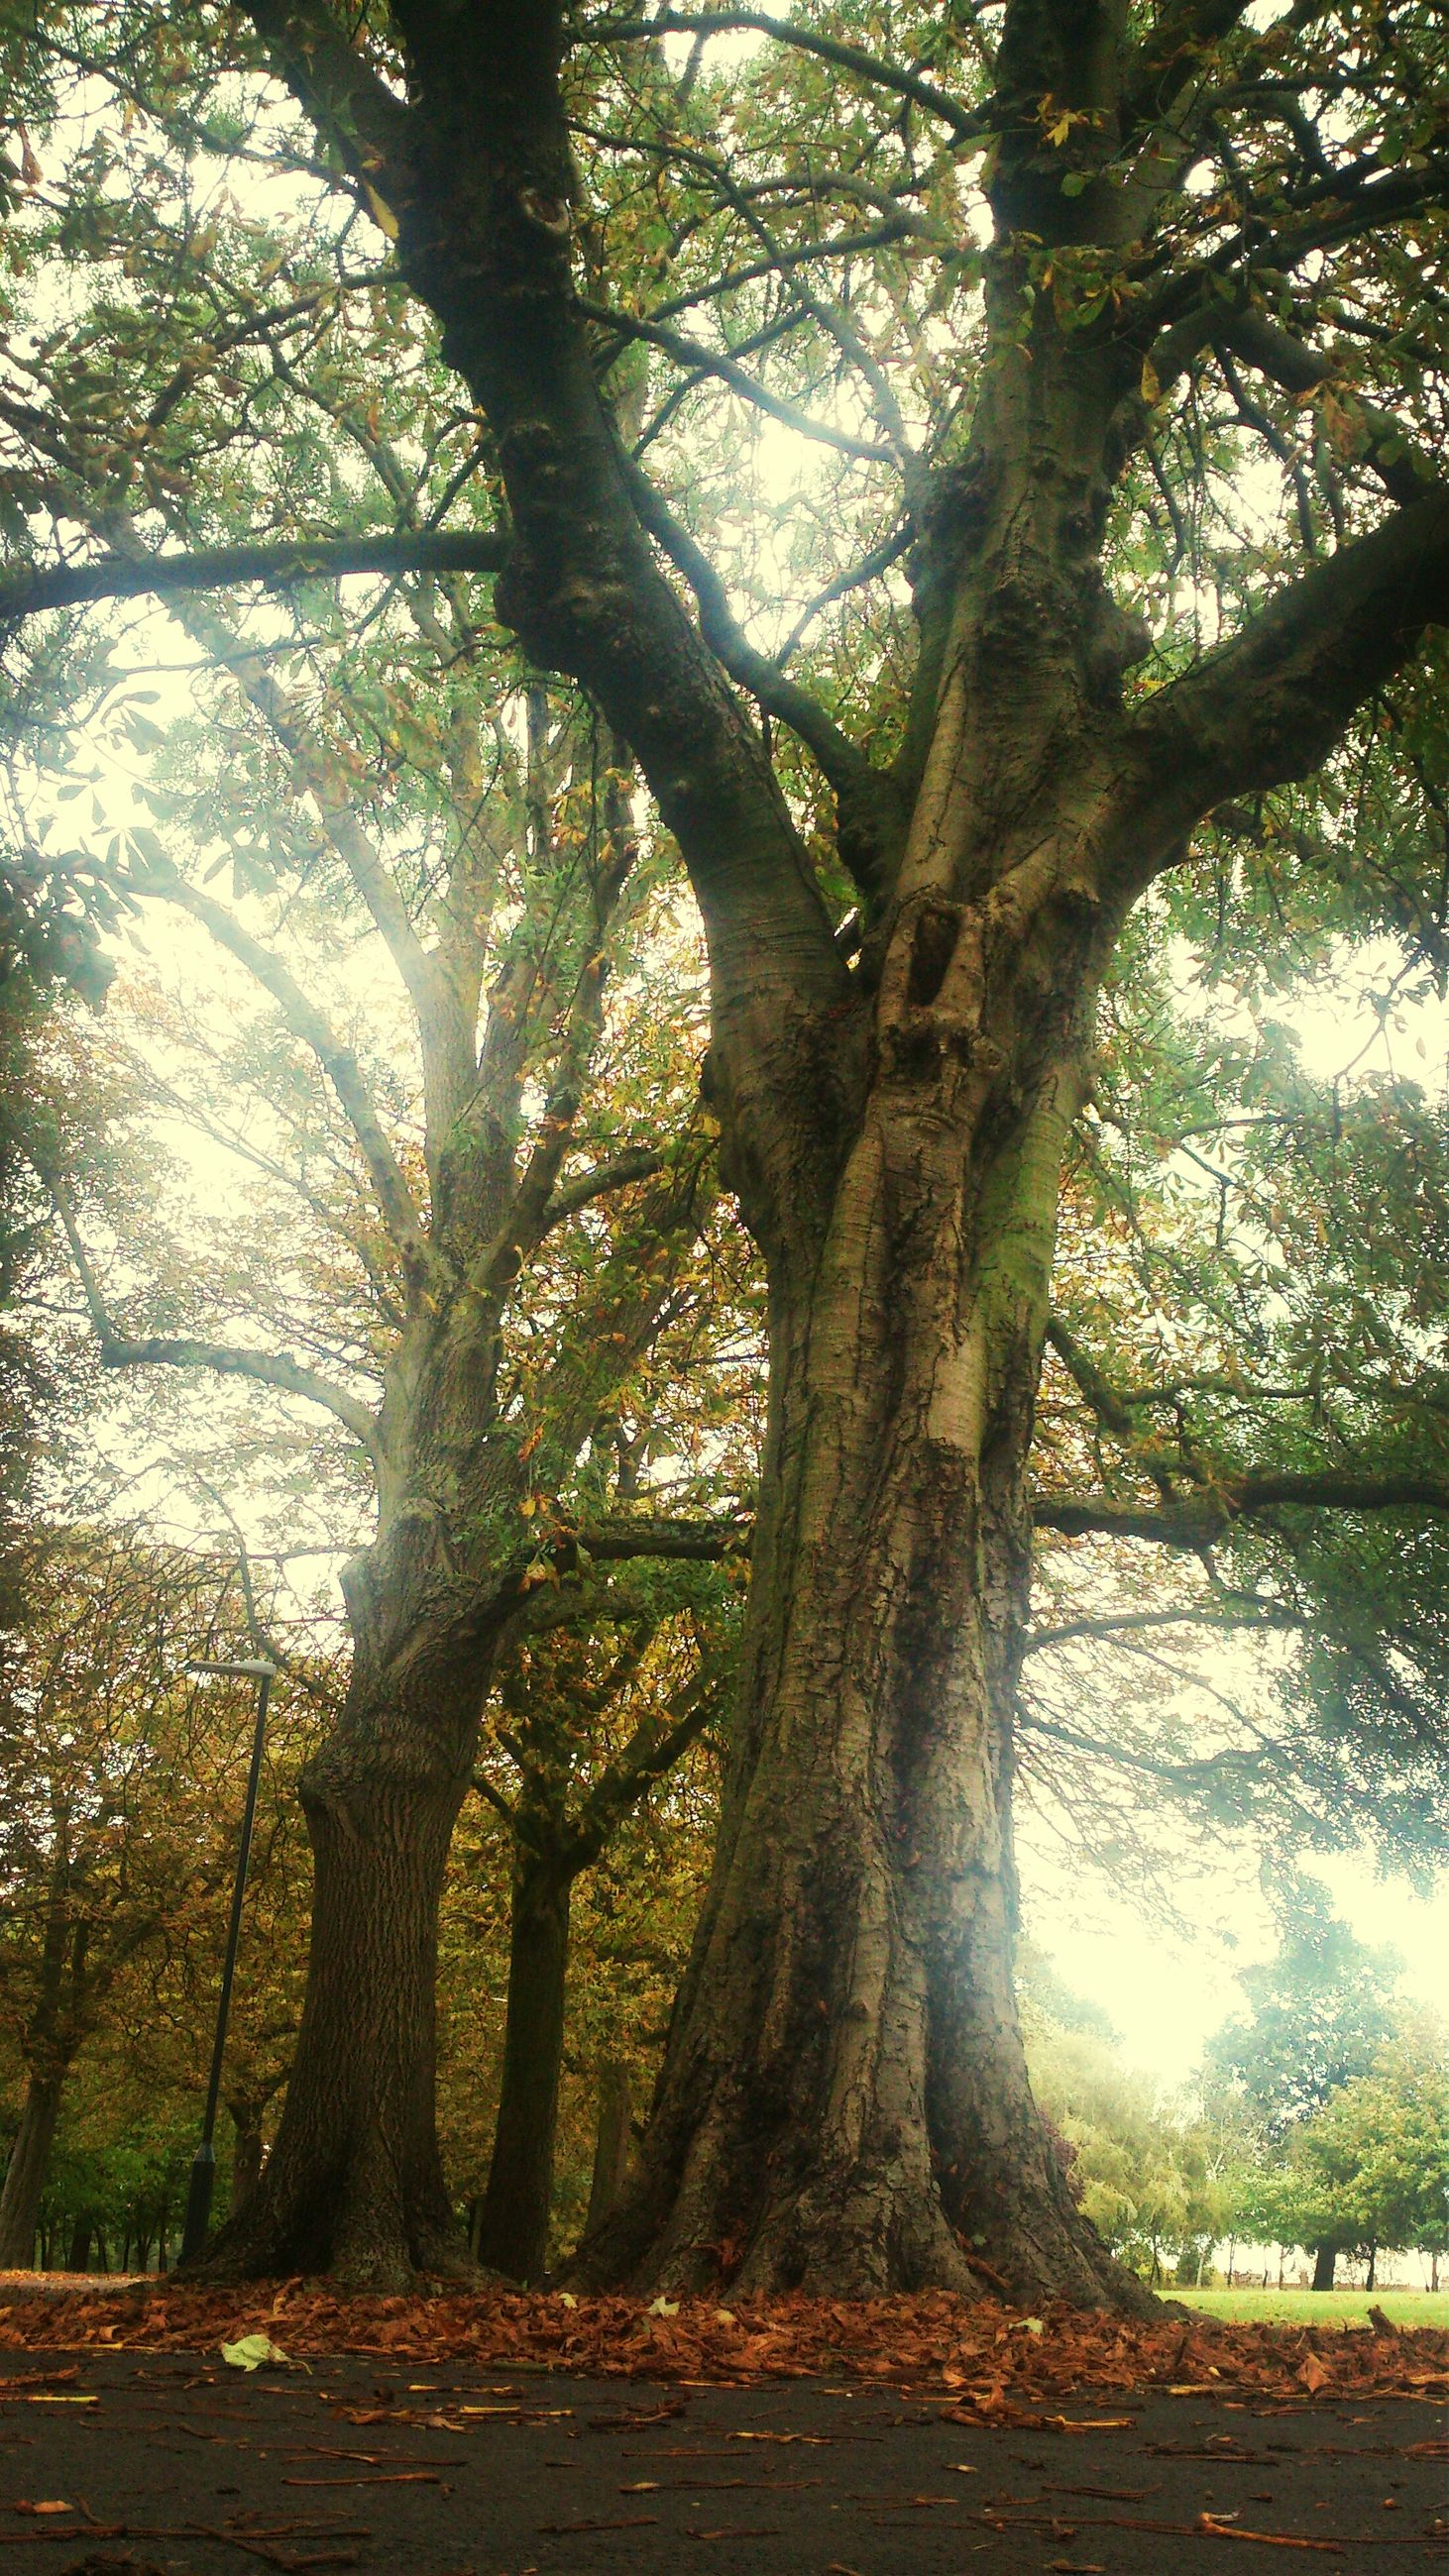 tree, tree trunk, growth, branch, tranquility, nature, tranquil scene, park - man made space, beauty in nature, scenics, day, shadow, sunlight, forest, outdoors, no people, park, sky, low angle view, non-urban scene